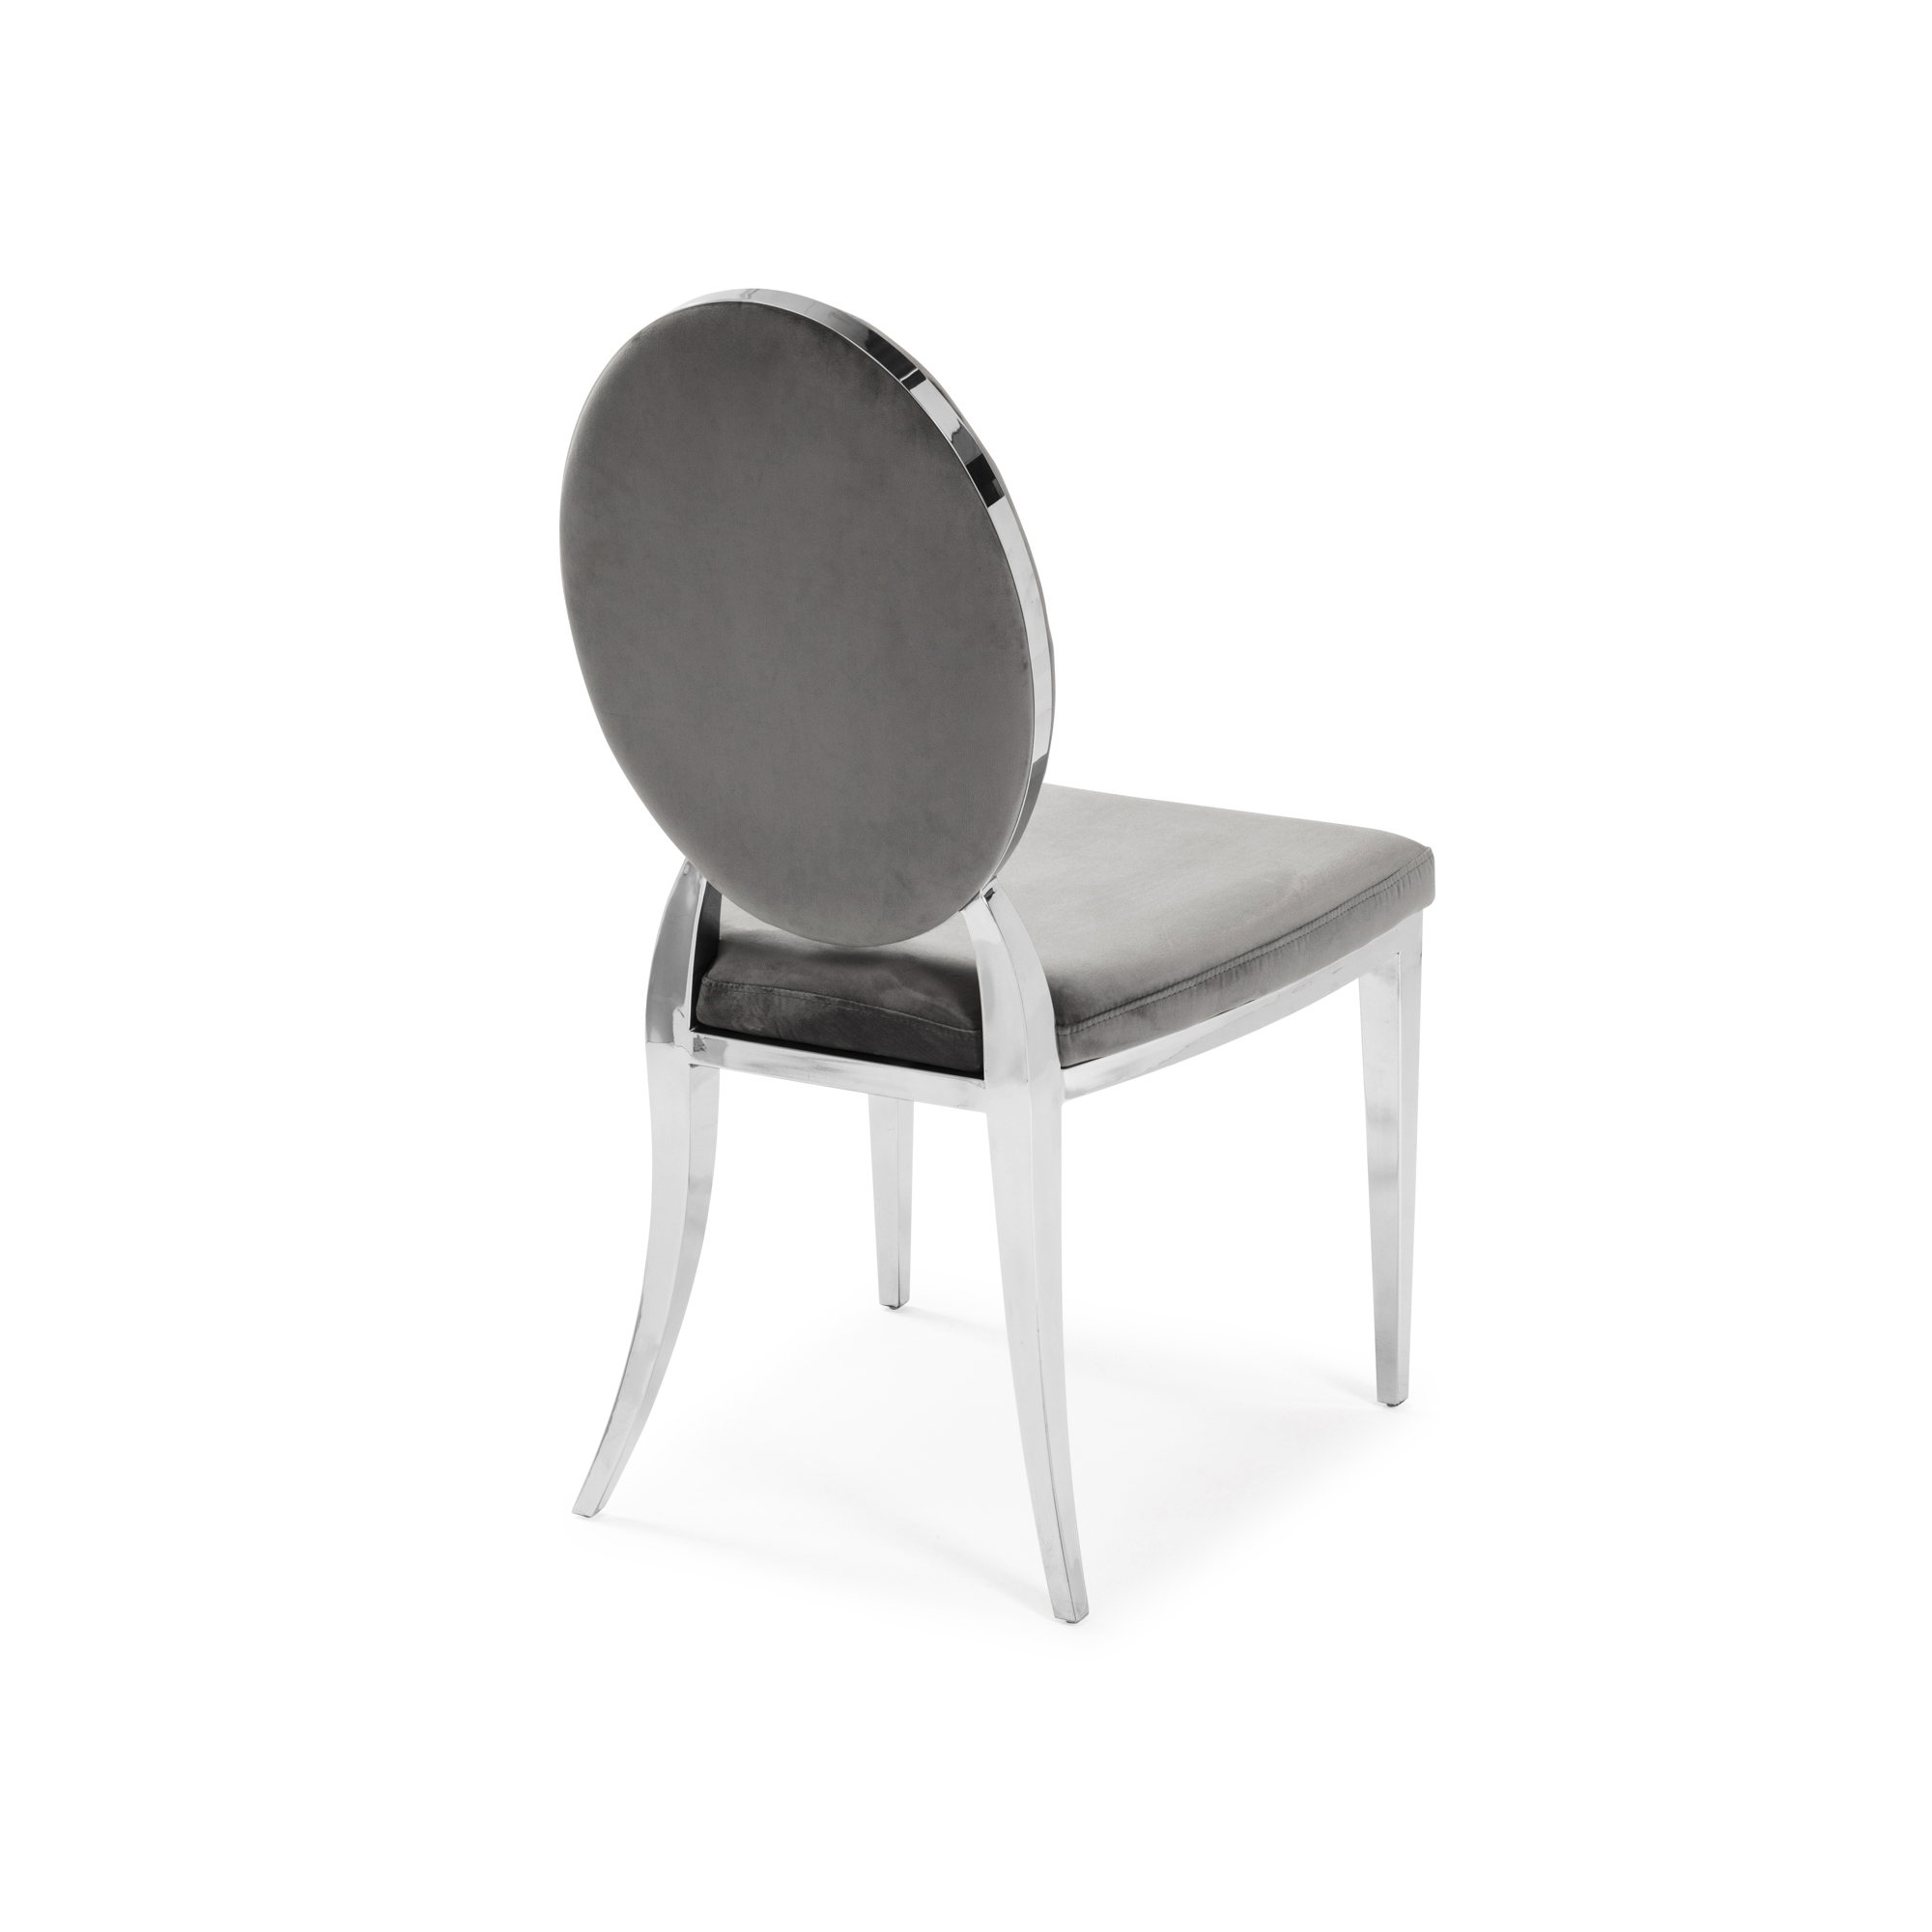 1.3m Louis White Round Marble Dining Table & Chairs Set (x4 Grey Velvet Dining Chairs)